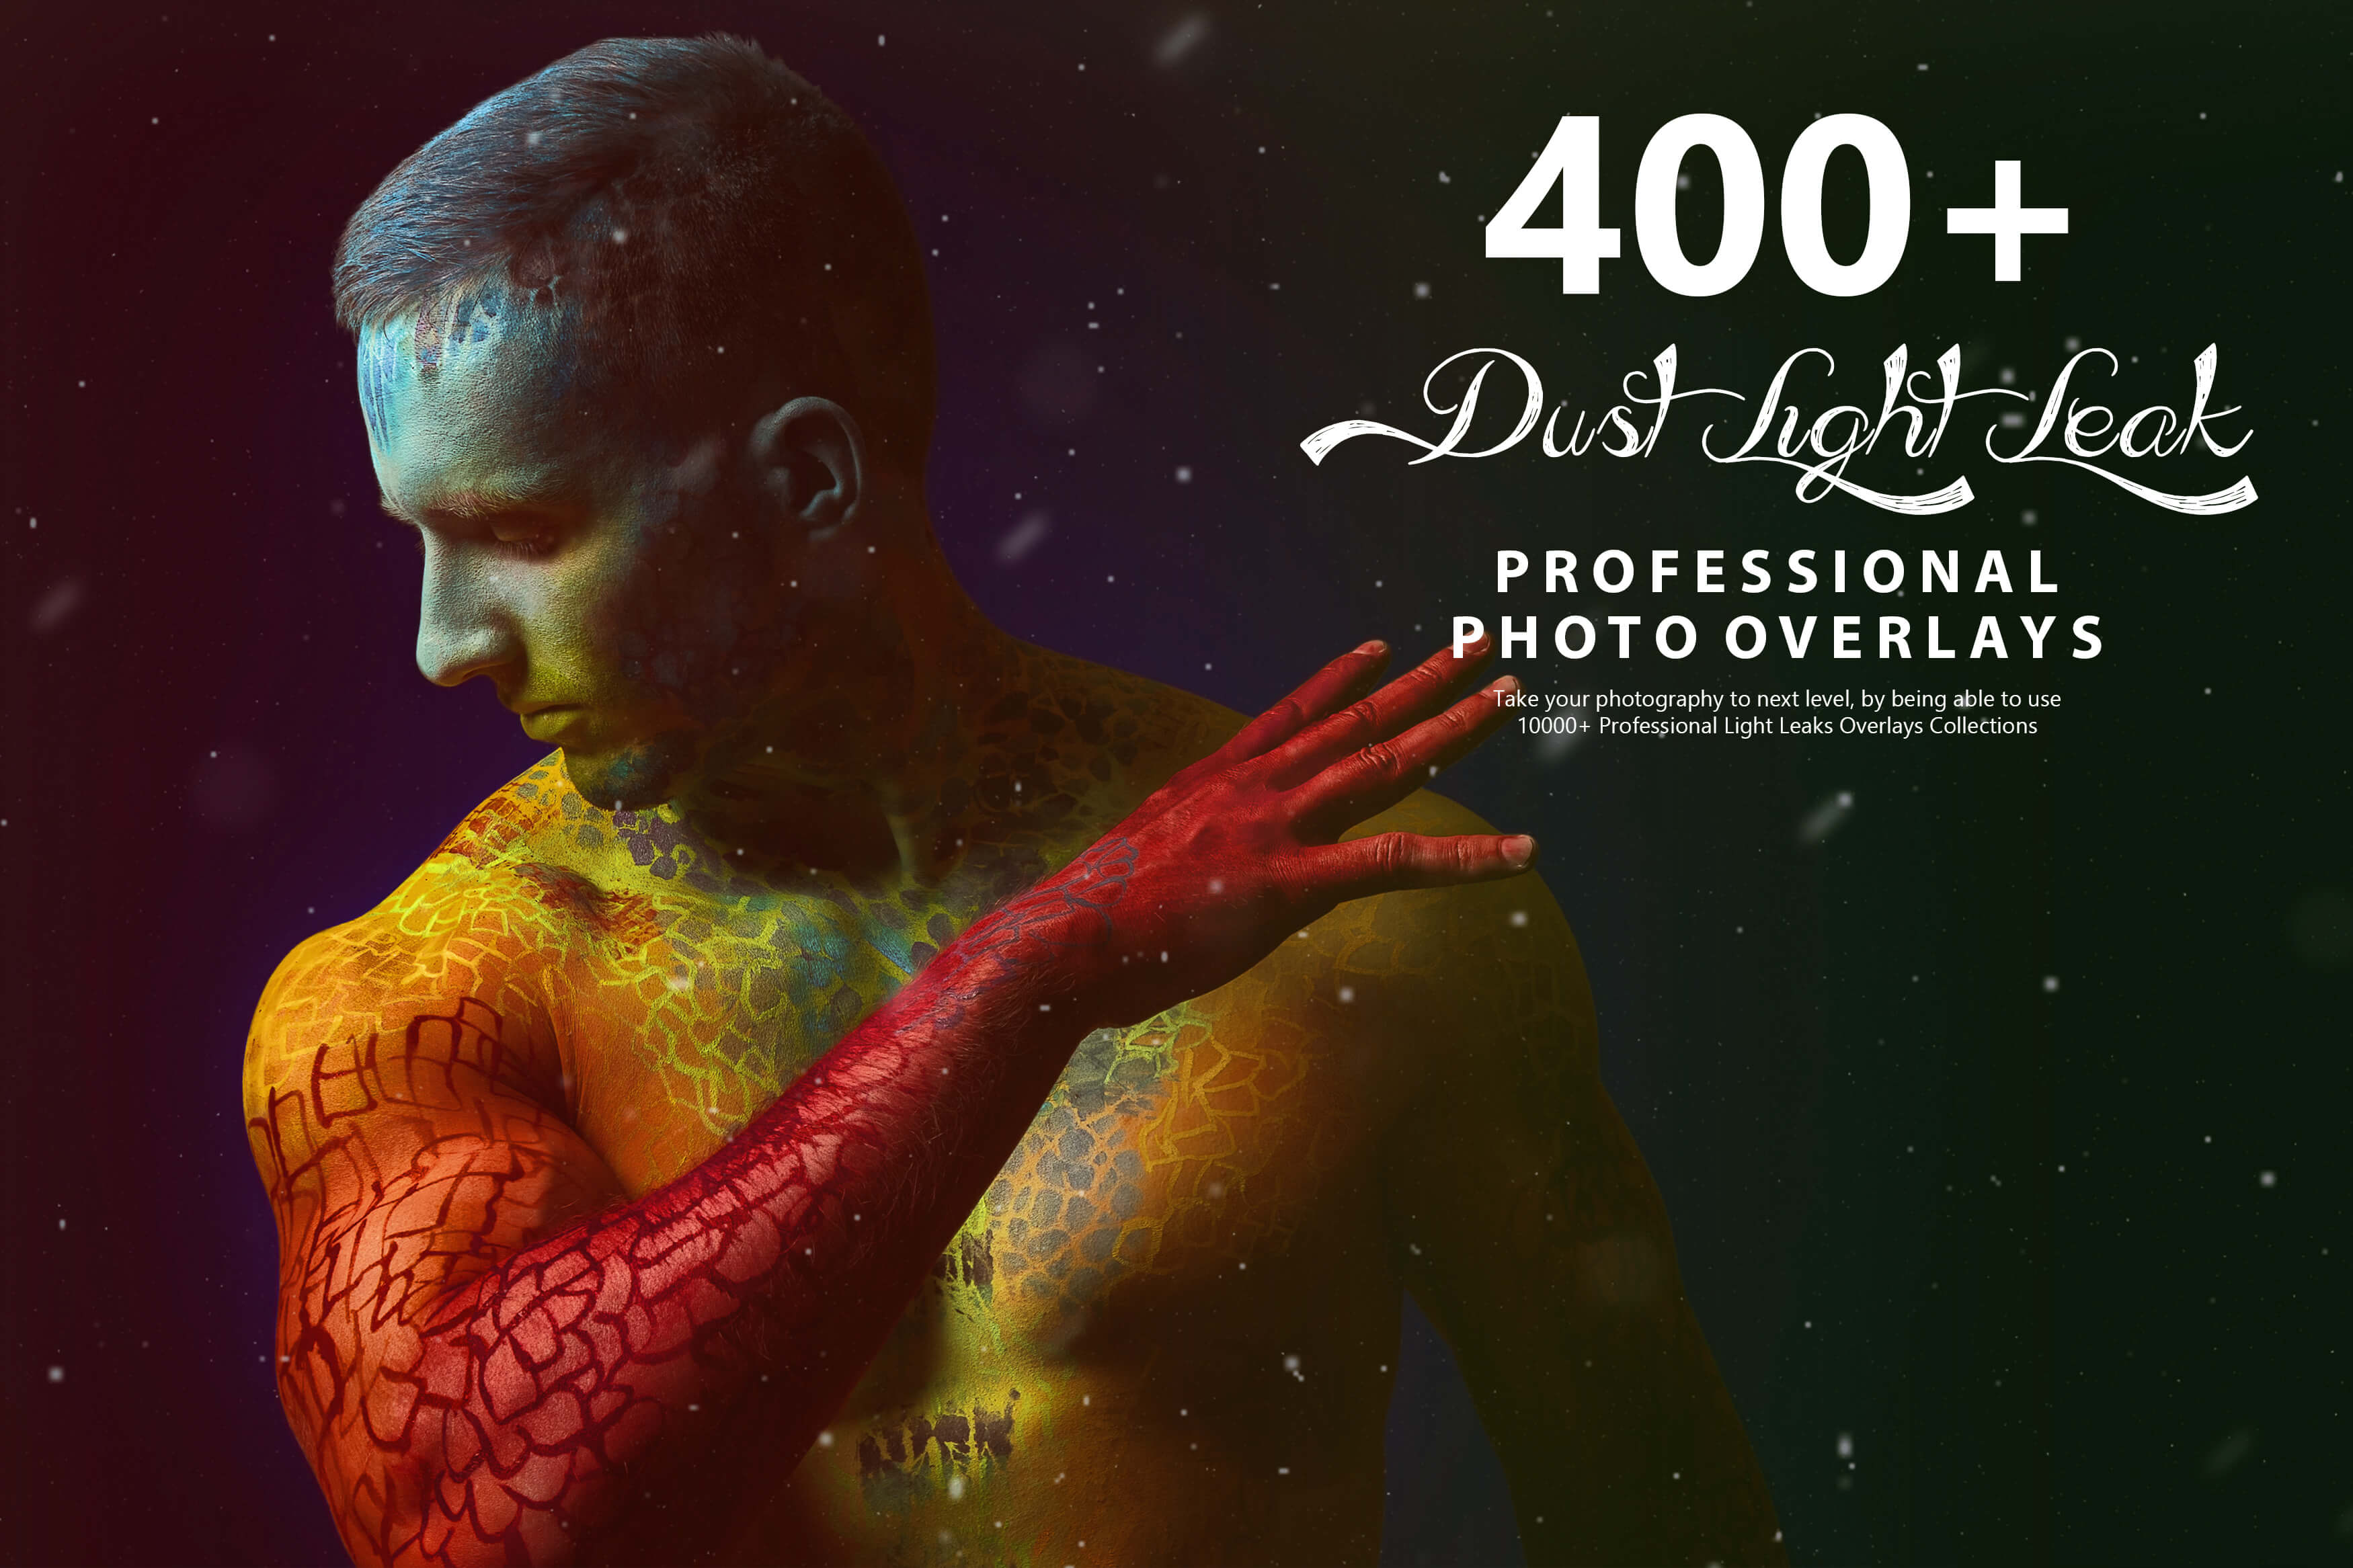 10,000+ Professional Light Leaks Photo Overlays-Graphics-Artixty